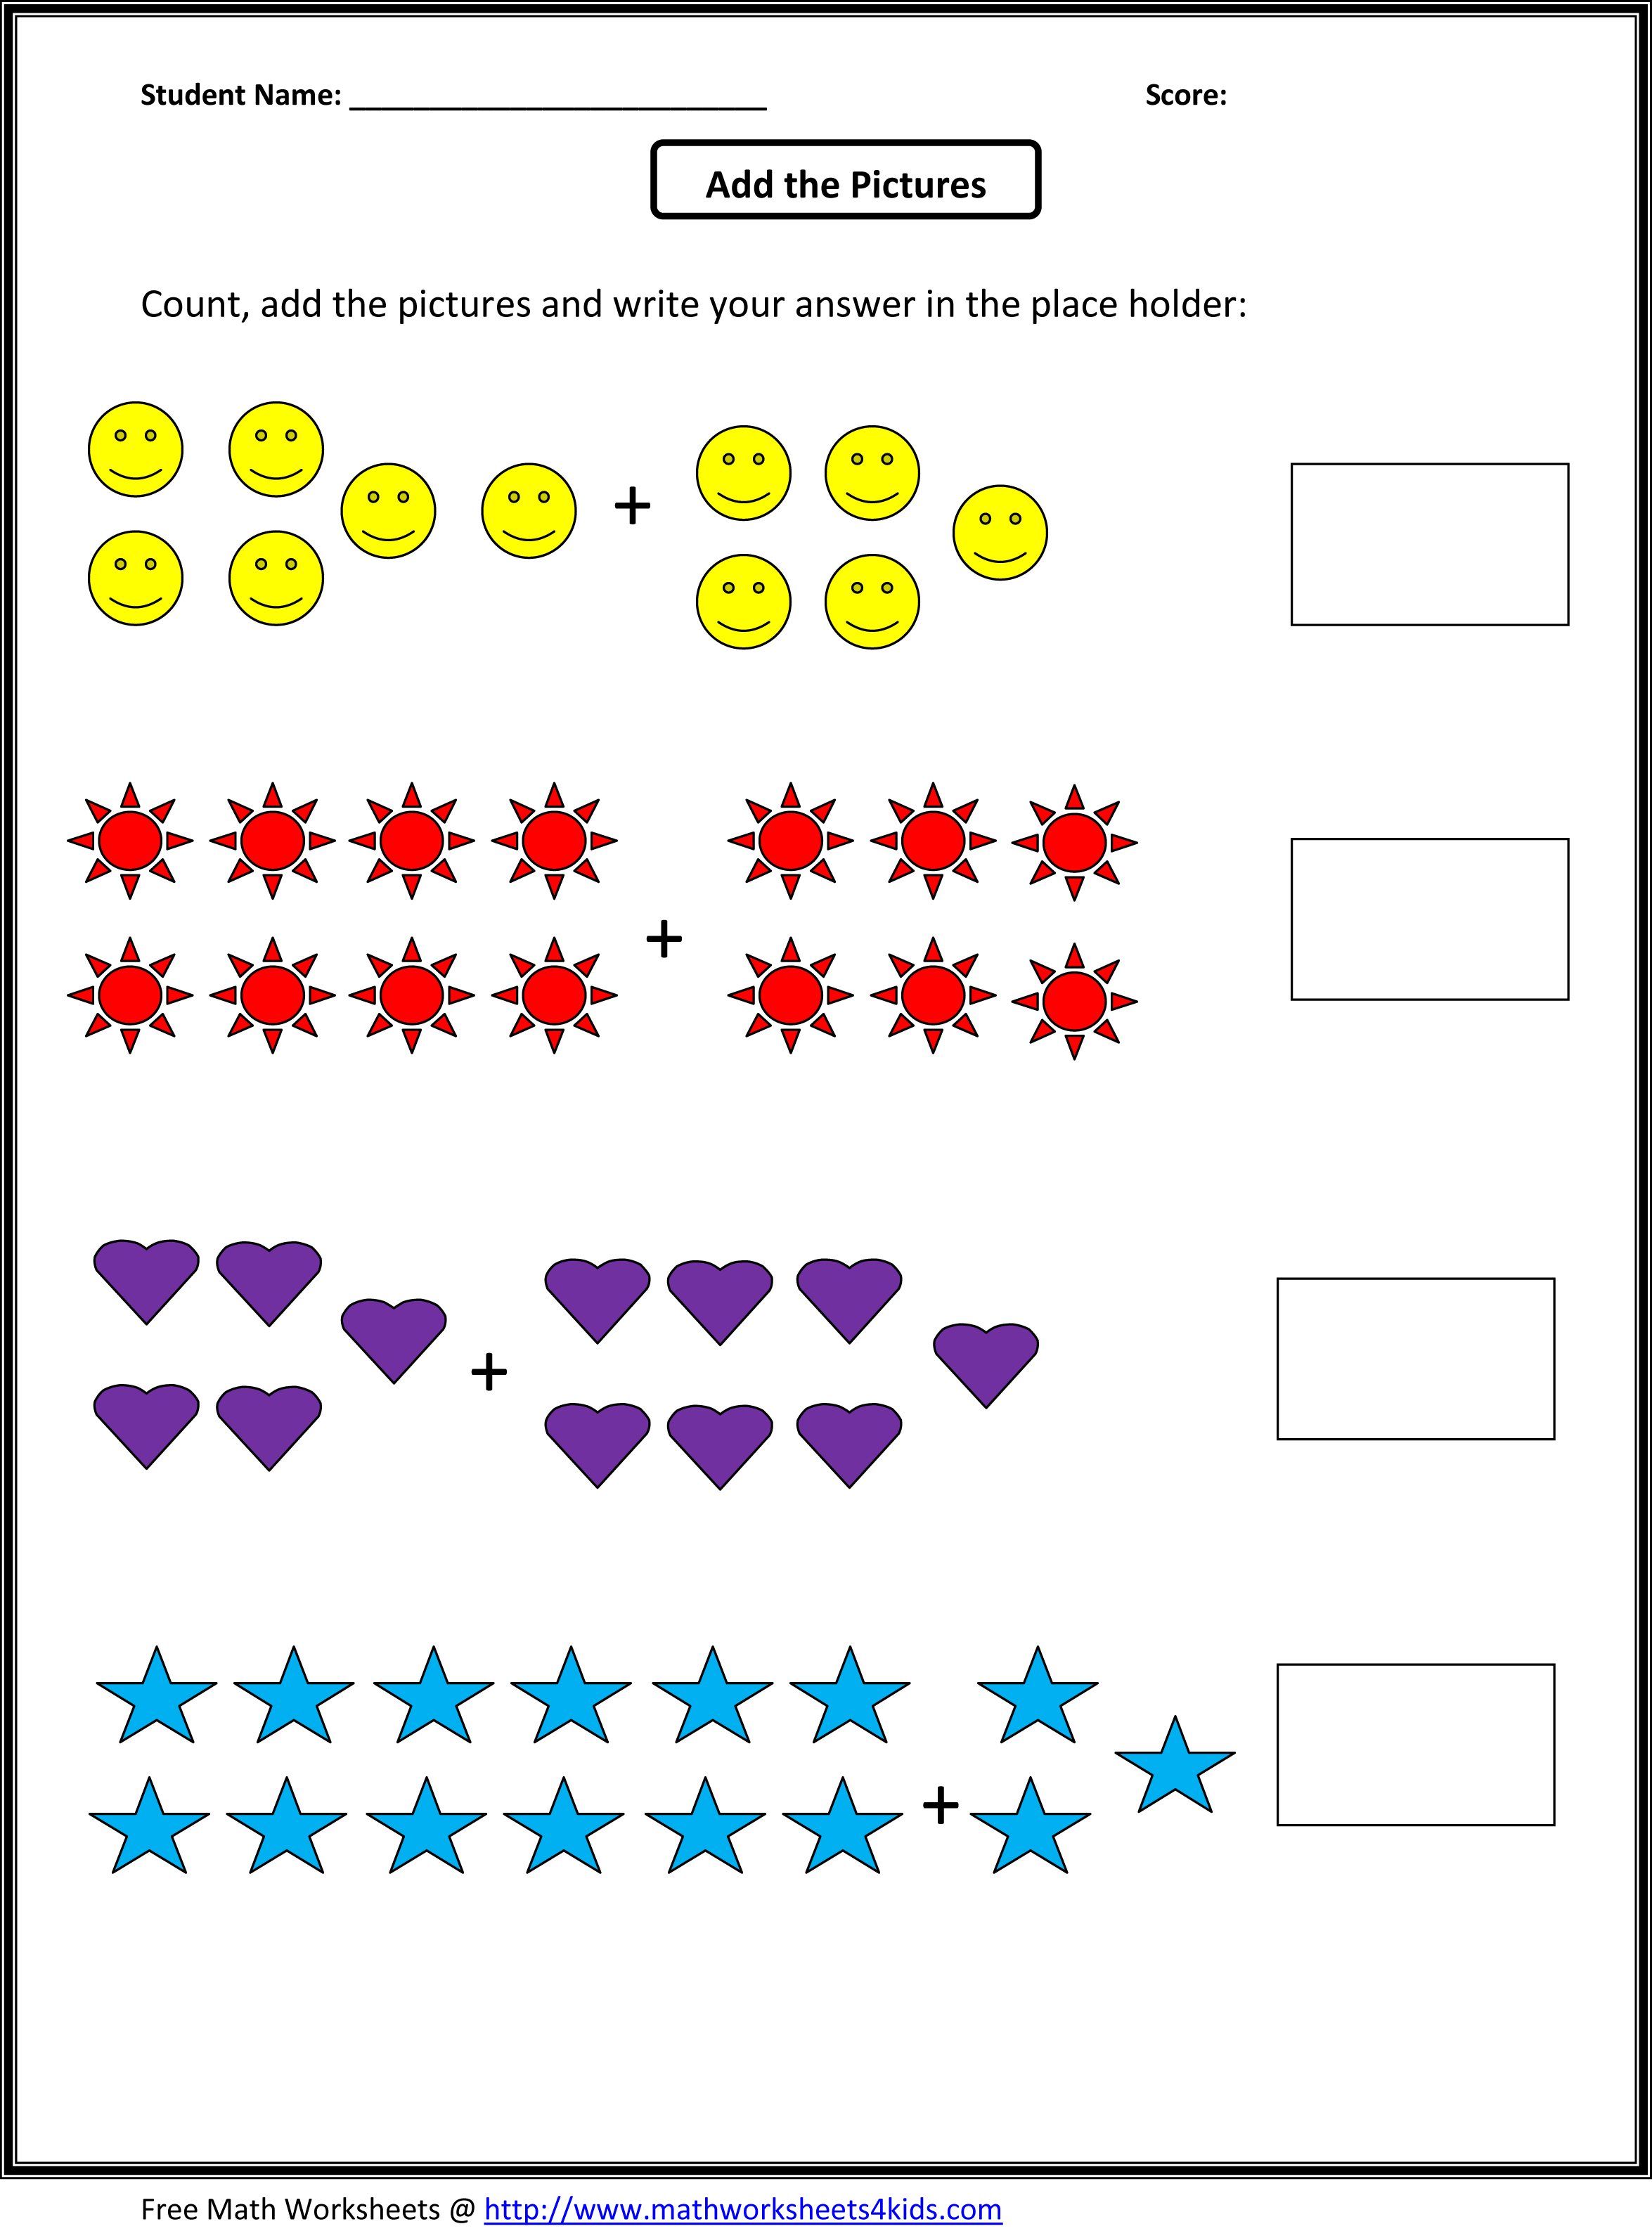 Weirdmailus  Pretty Grade  Maths Worksheet  Reocurent With Engaging Math Worksheets For St Grade Free  Reocurent With Cute Free Math Worksheets Nd Grade Also Free Noun Worksheets In Addition Worksheet On Decimal Place Value And Free Printable Vocabulary Worksheets As Well As Sketching Parabolas Worksheet Additionally Multiplying A Binomial By A Trinomial Worksheet From Reocurentcom With Weirdmailus  Engaging Grade  Maths Worksheet  Reocurent With Cute Math Worksheets For St Grade Free  Reocurent And Pretty Free Math Worksheets Nd Grade Also Free Noun Worksheets In Addition Worksheet On Decimal Place Value From Reocurentcom